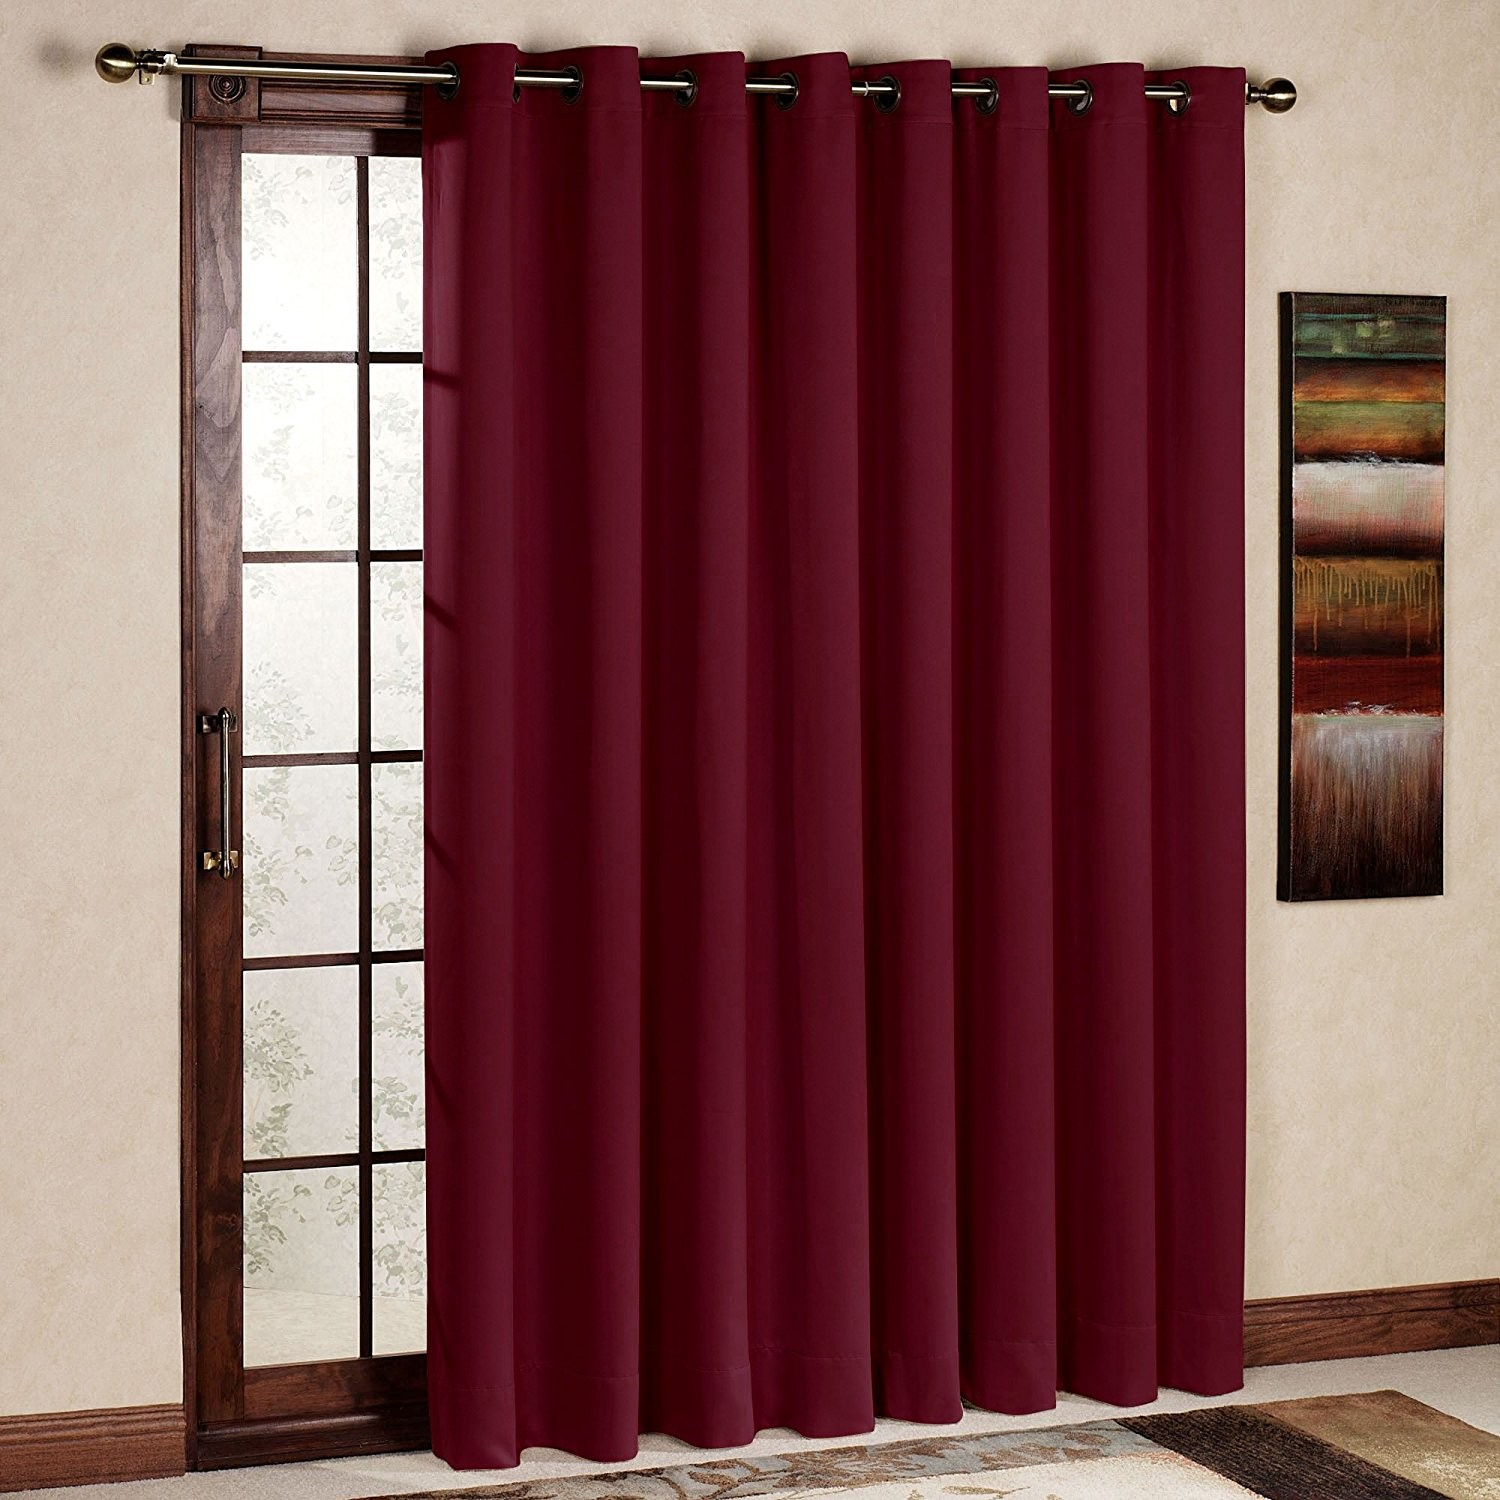 Rhf Wide Thermal Blackout Patio Door Curtain Panel, Sliding Within Grommet Blackout Patio Door Window Curtain Panels (Gallery 7 of 20)